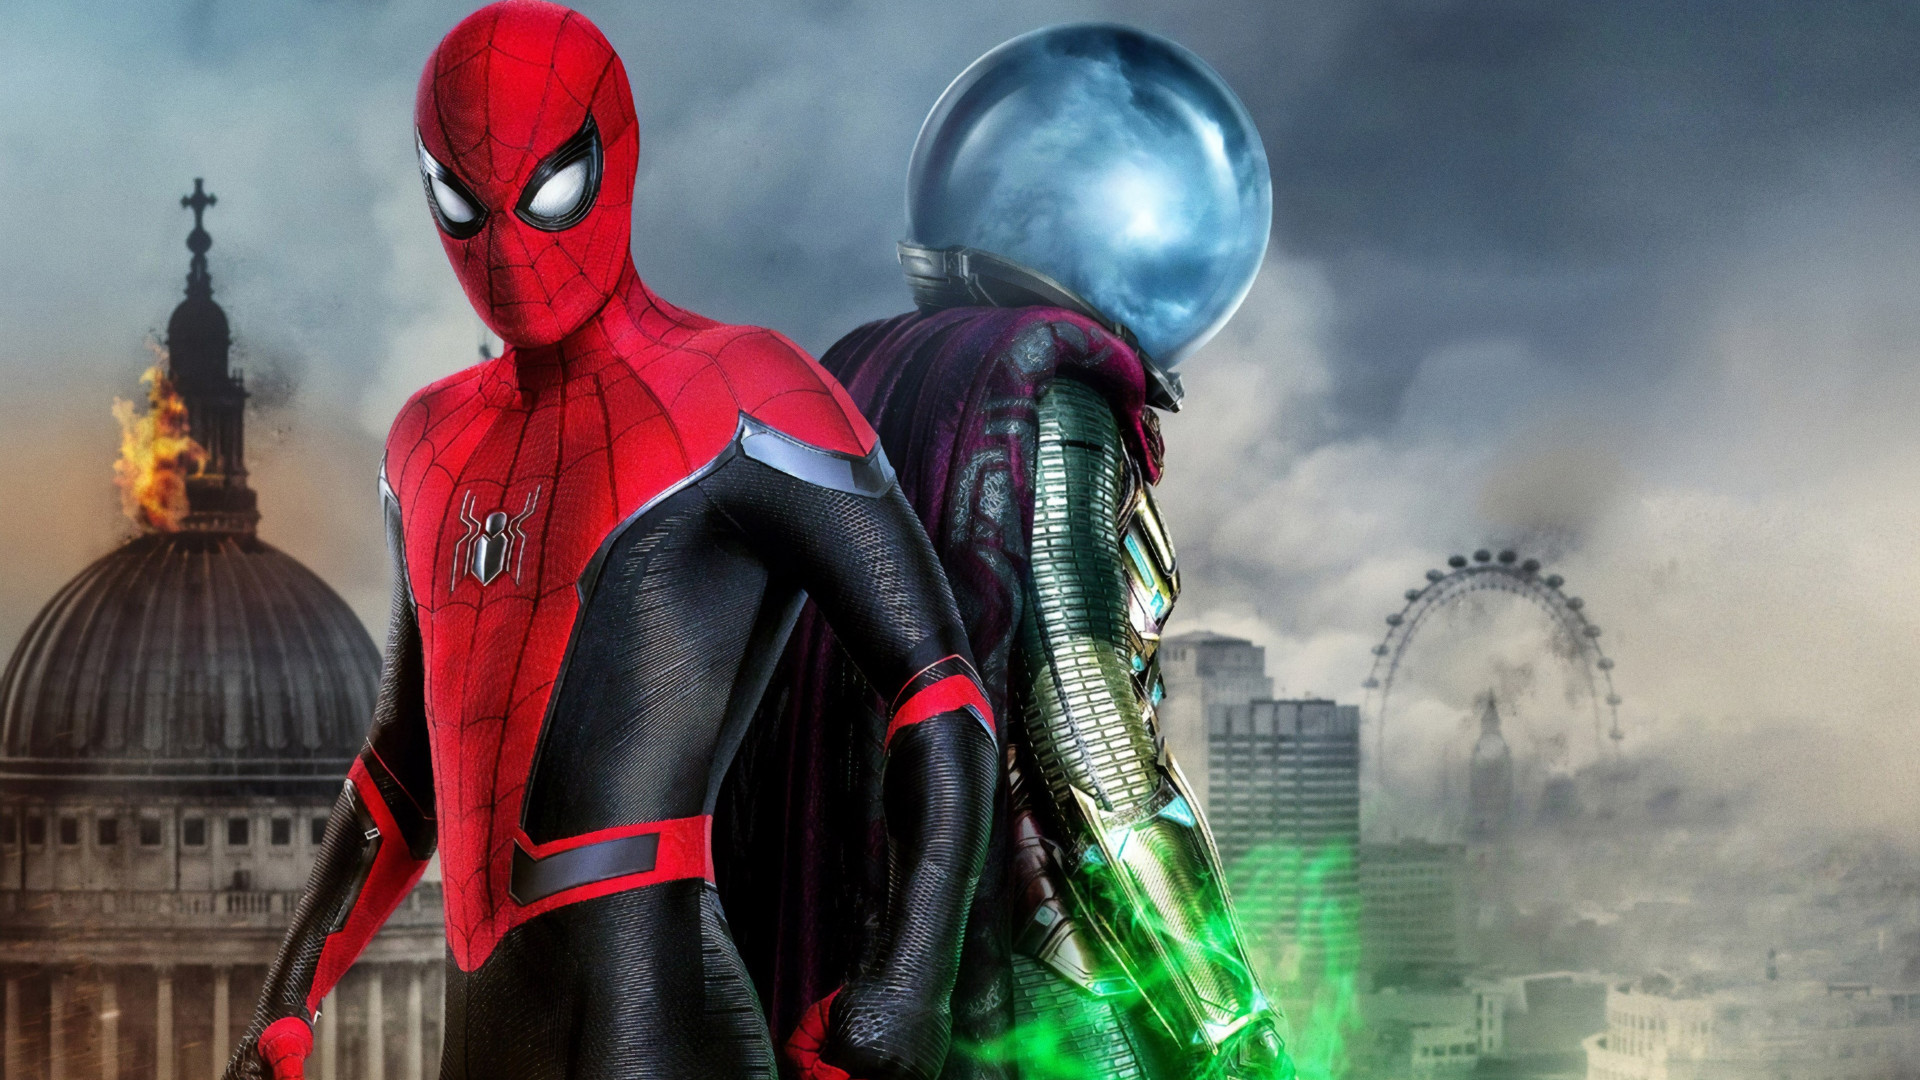 Download Wallpaper Spider Man And Mysterio 1920x1080